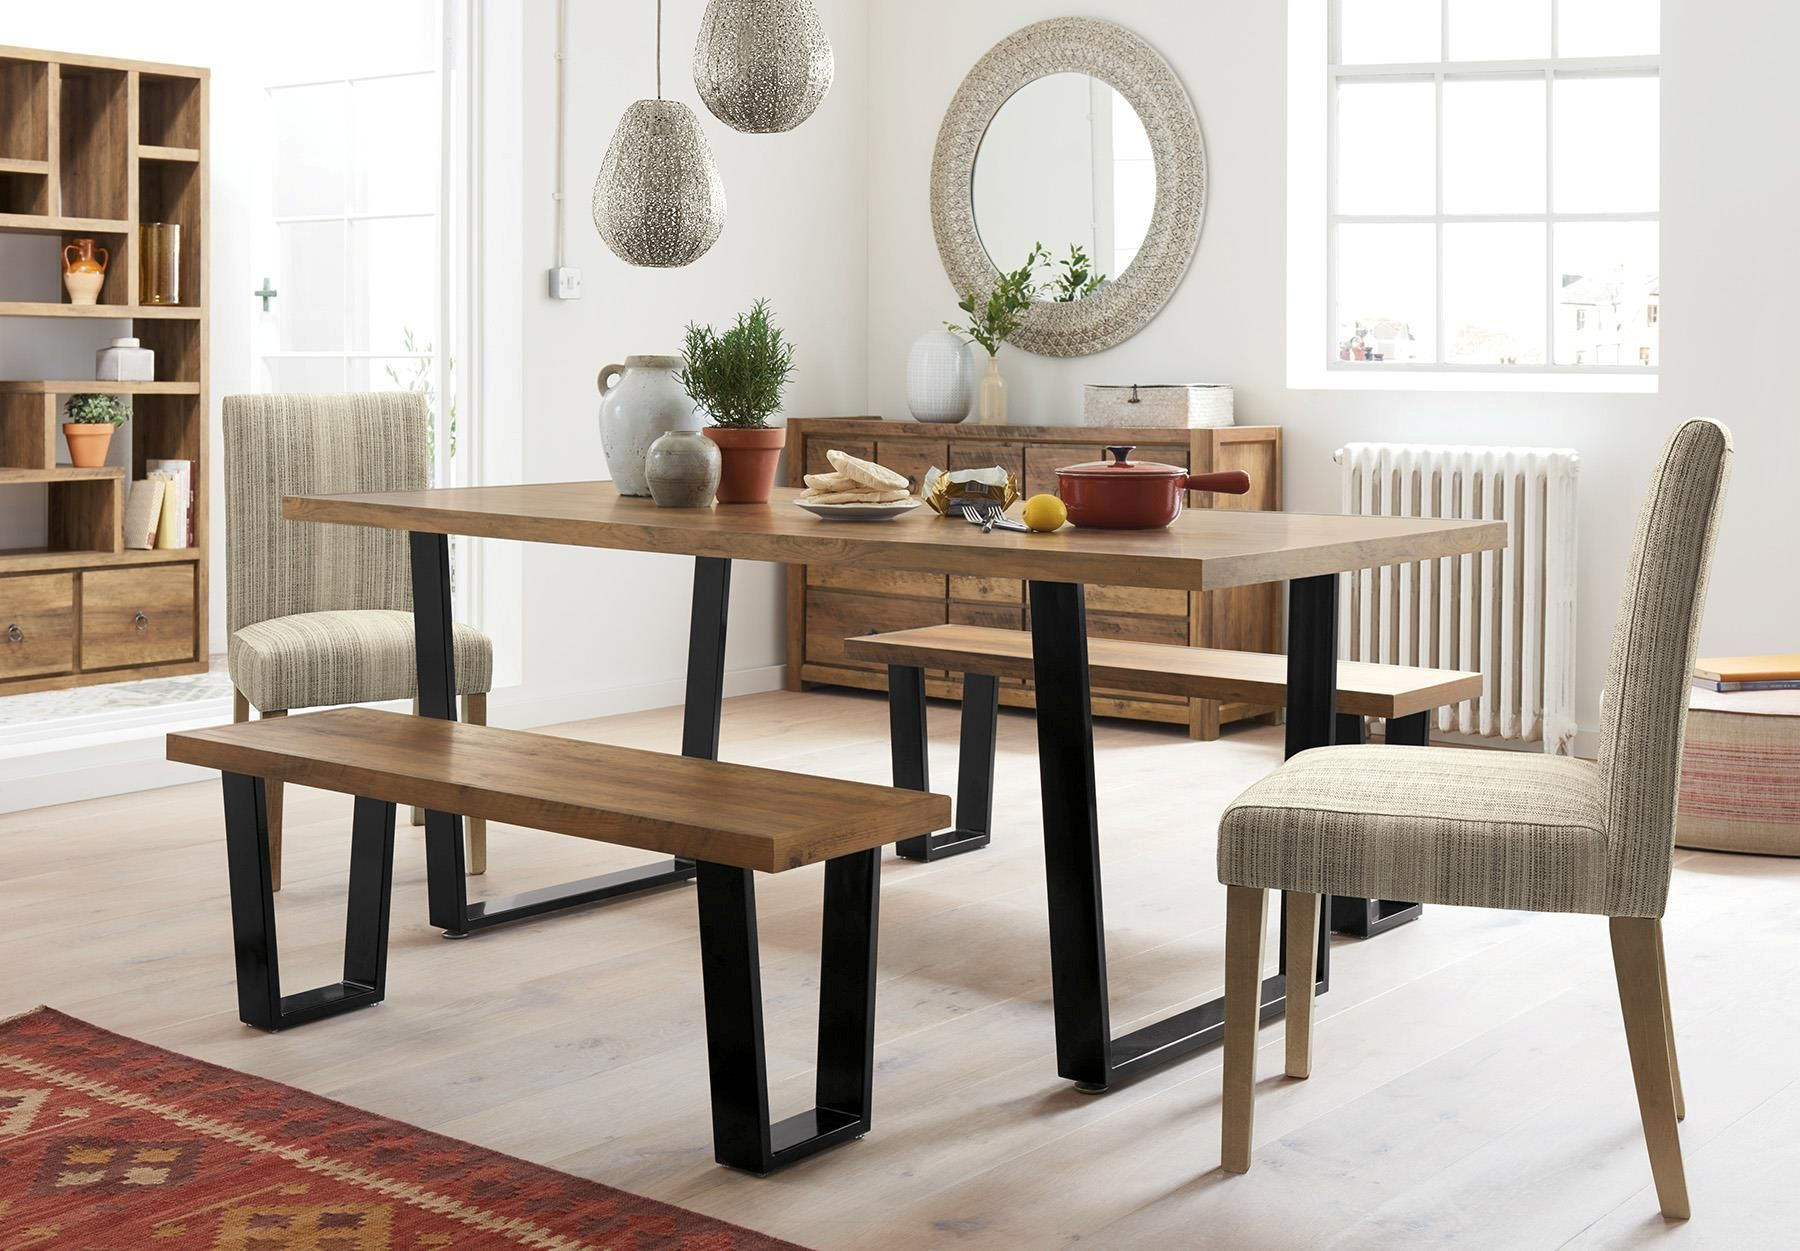 Chiltern 6 Seater Dining Table From The Next Uk Online